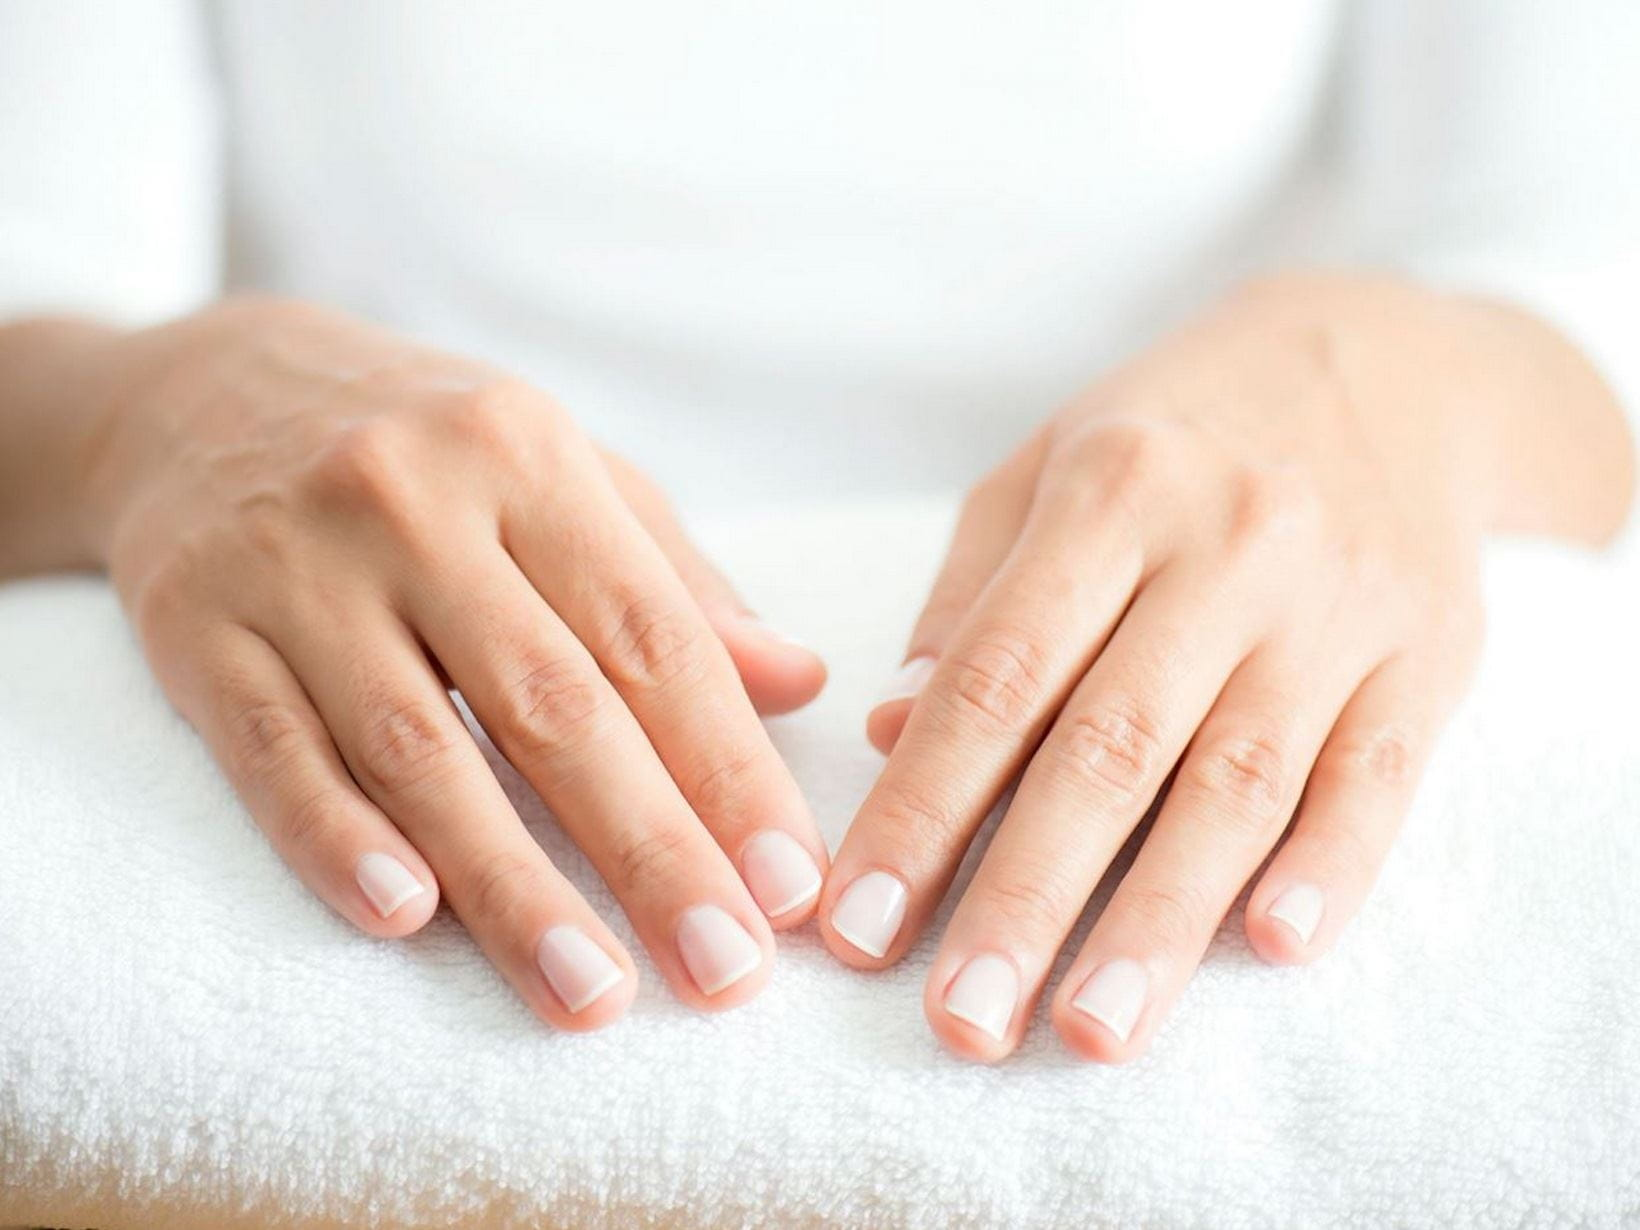 manicured hands on a white towel